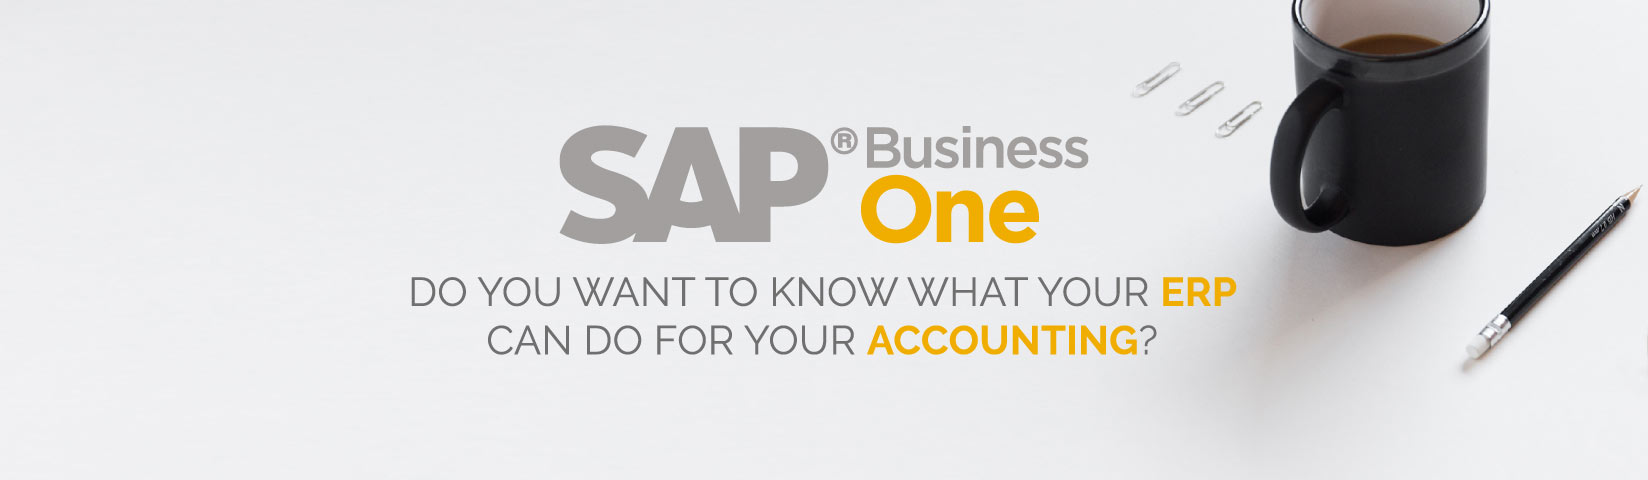 AGENTIL Training Tuesday SAP Business One Accounting